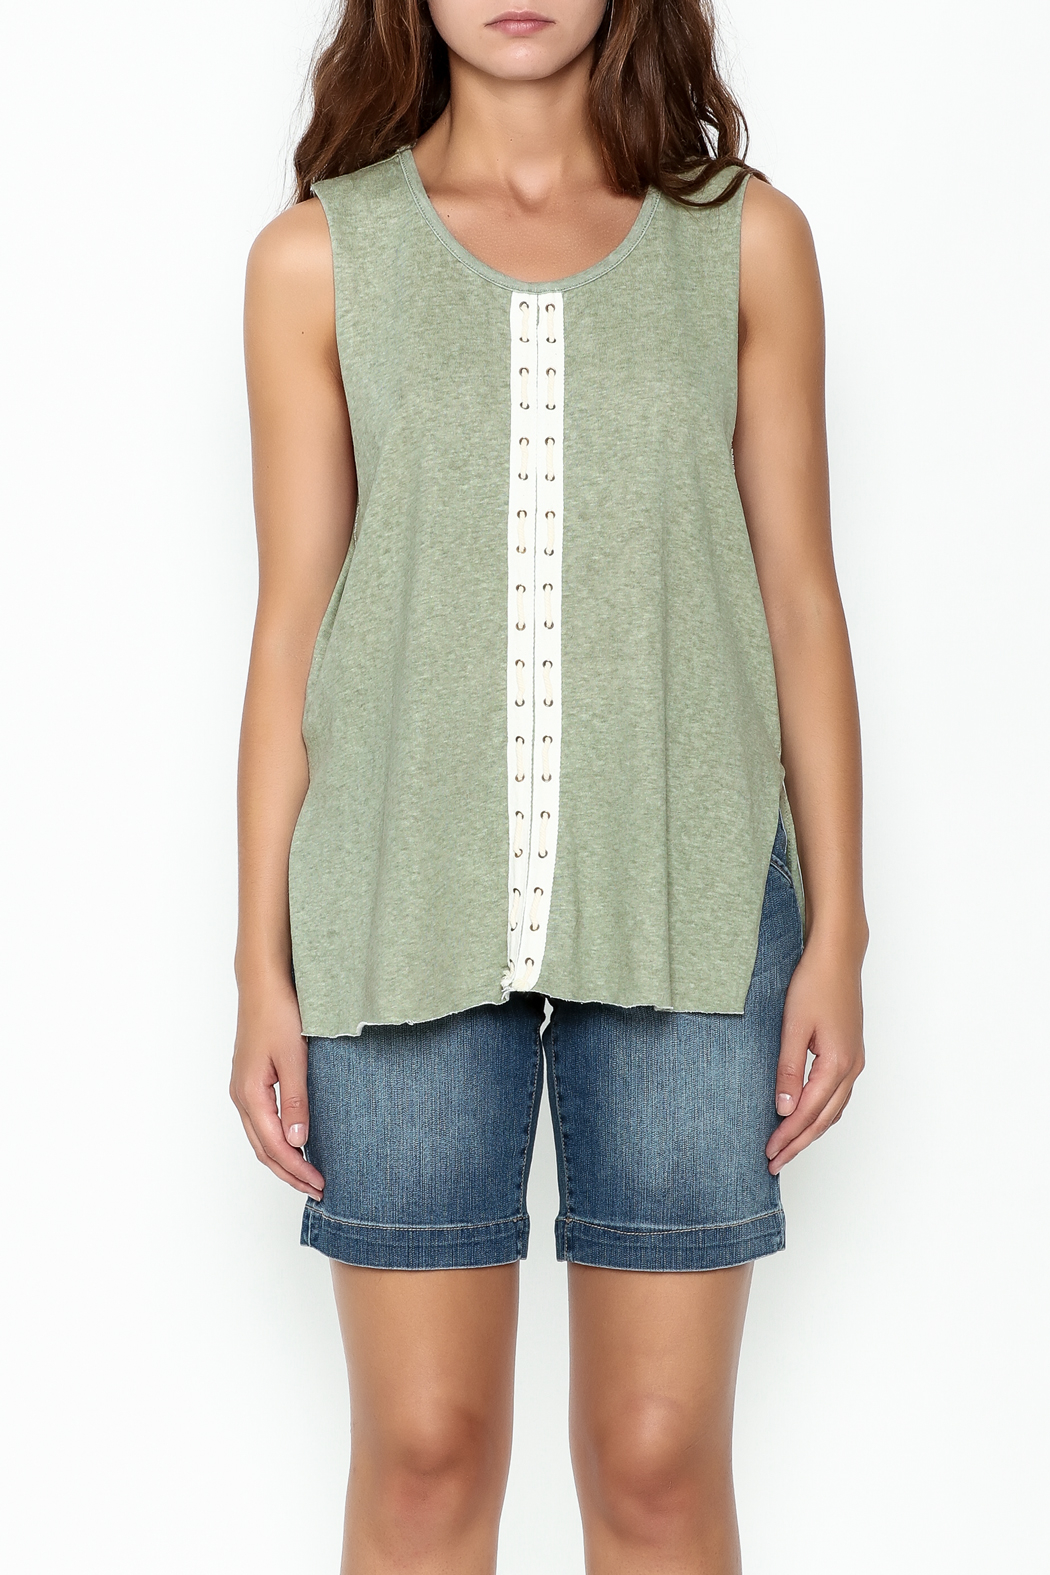 POL Eyelet Muscle Tee - Front Full Image